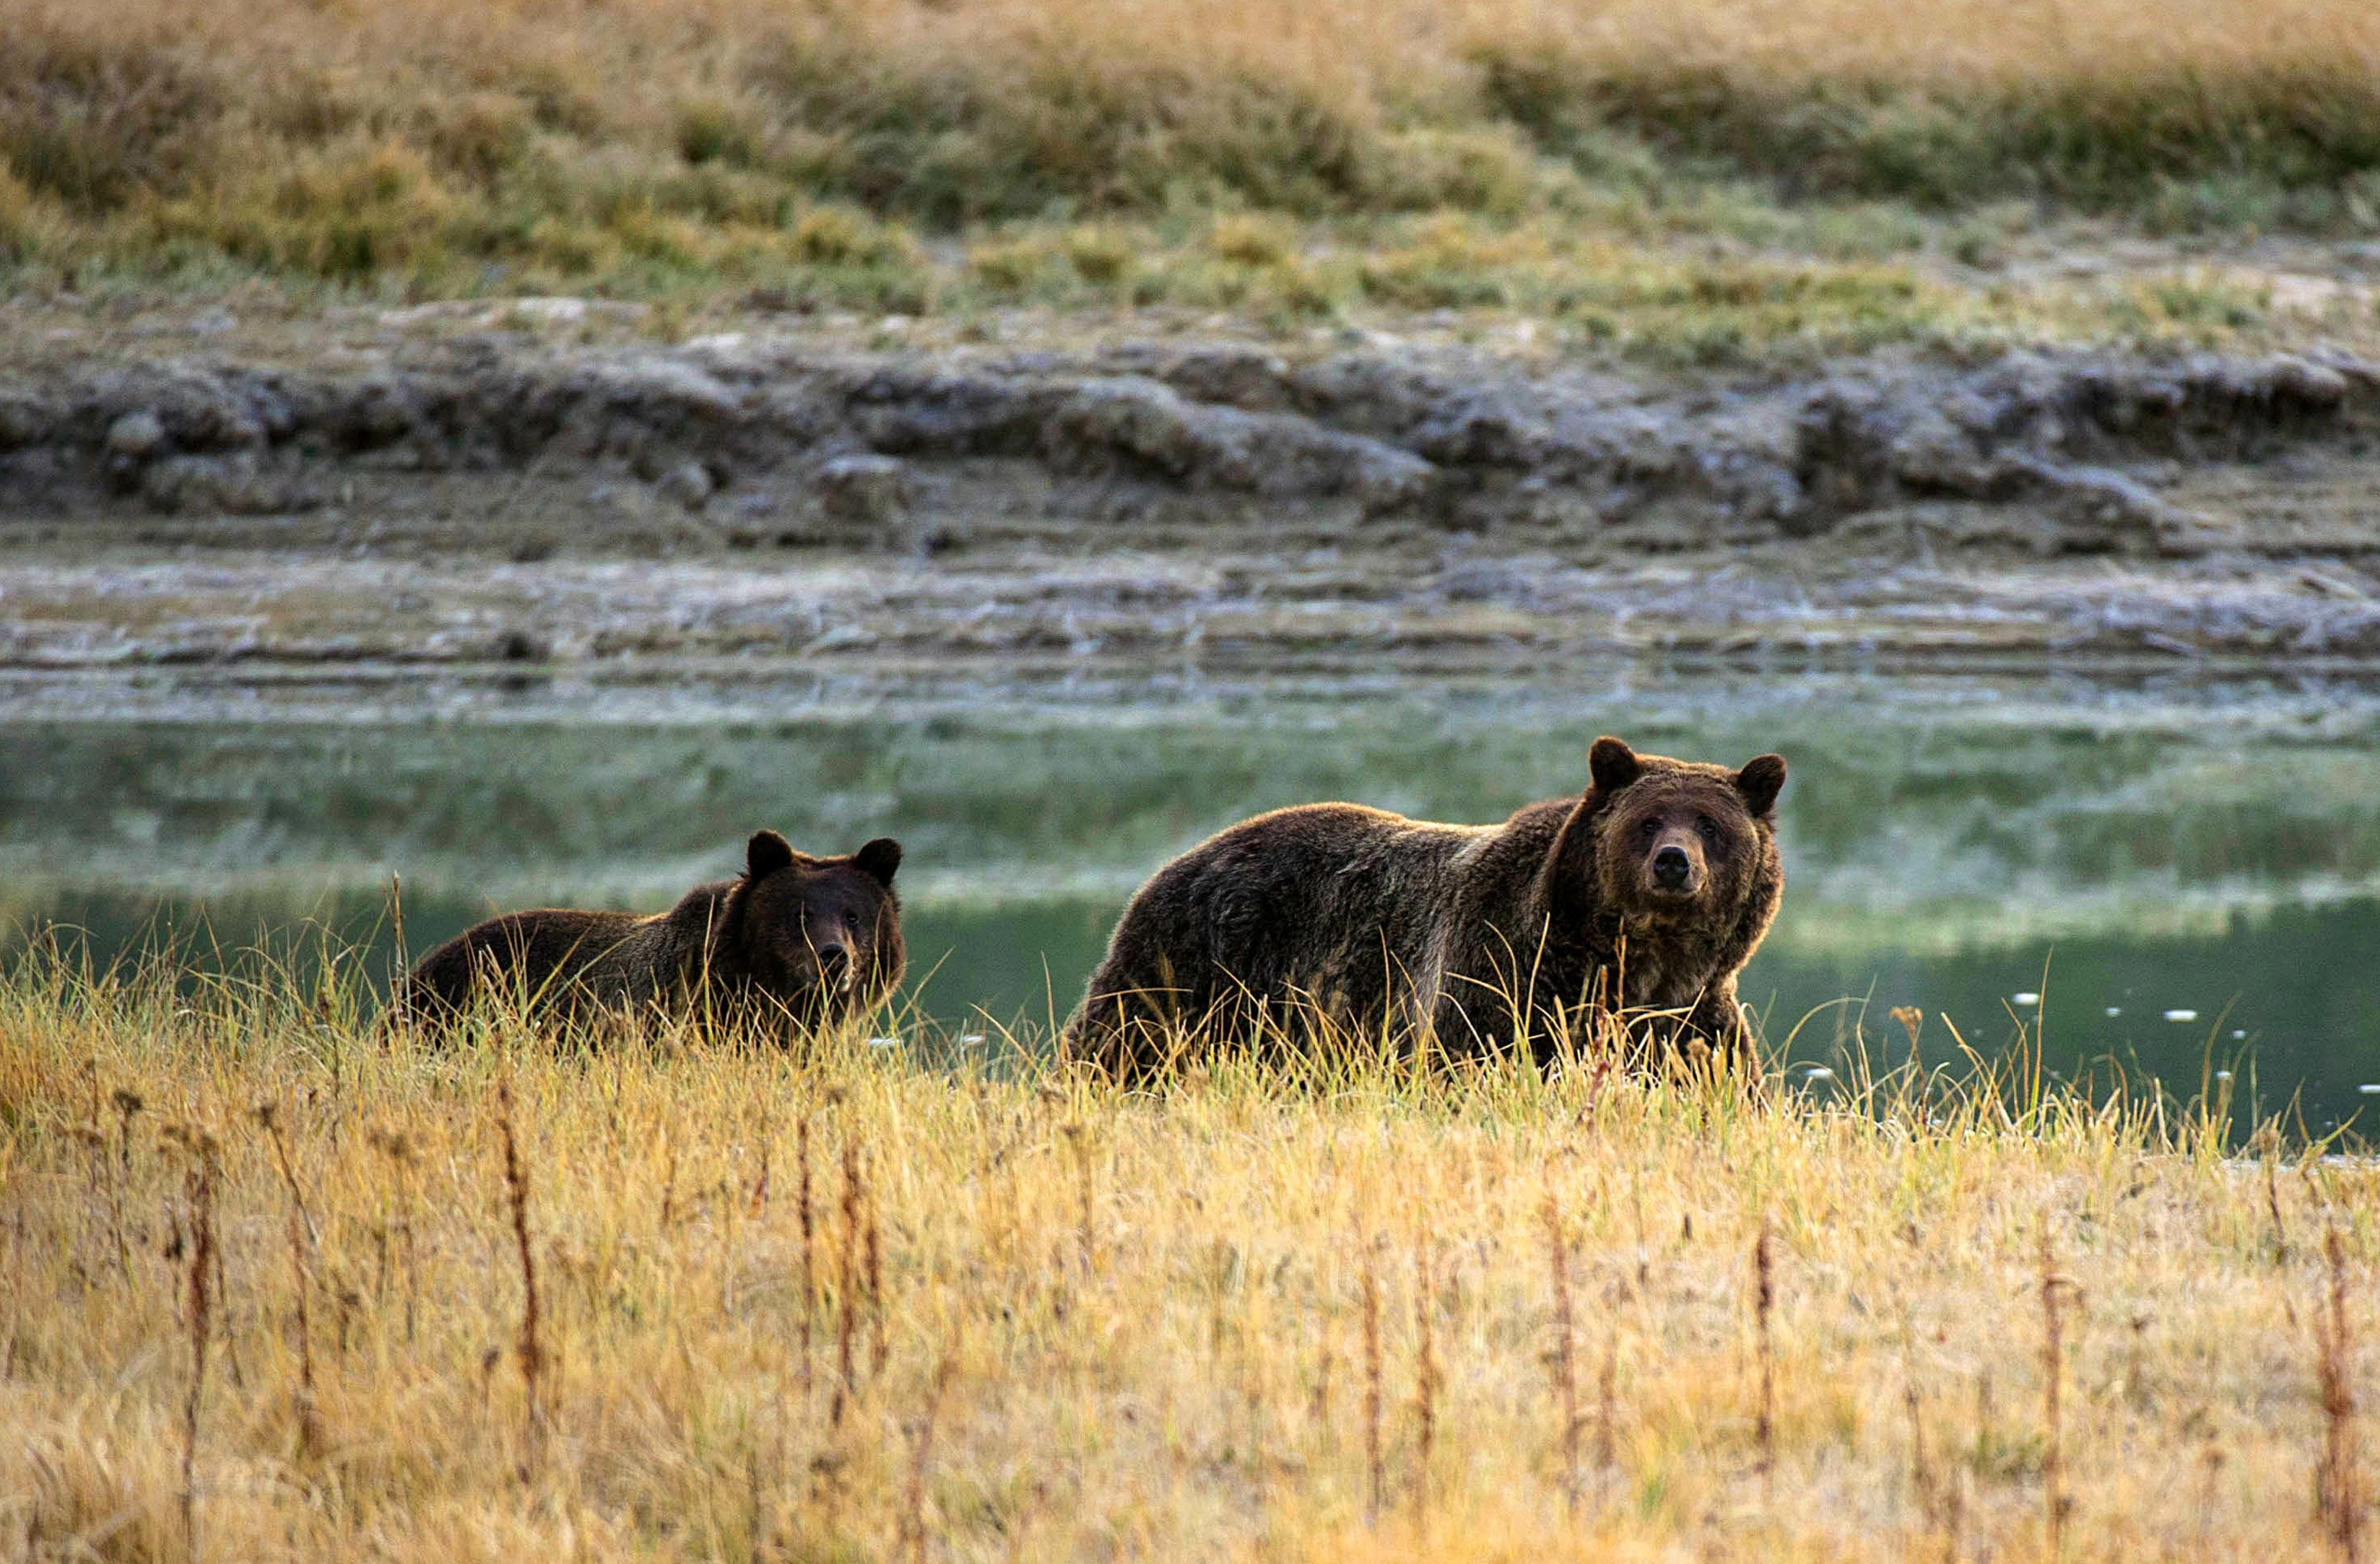 A Grizzly bear mother and her cub walk near Pelican Creek October 8, 2012 in the Yellowstone National Park in Wyoming.Yellowstone National Park is America's first national park. It was established in 1872. Yellowstone extends through Wyoming, Montana, and Idaho.  The park's name is derived from the Yellowstone River, which runs through the park.  AFP PHOTO/Karen BLEIER        (Photo credit should read KAREN BLEIER/AFP/Getty Images)